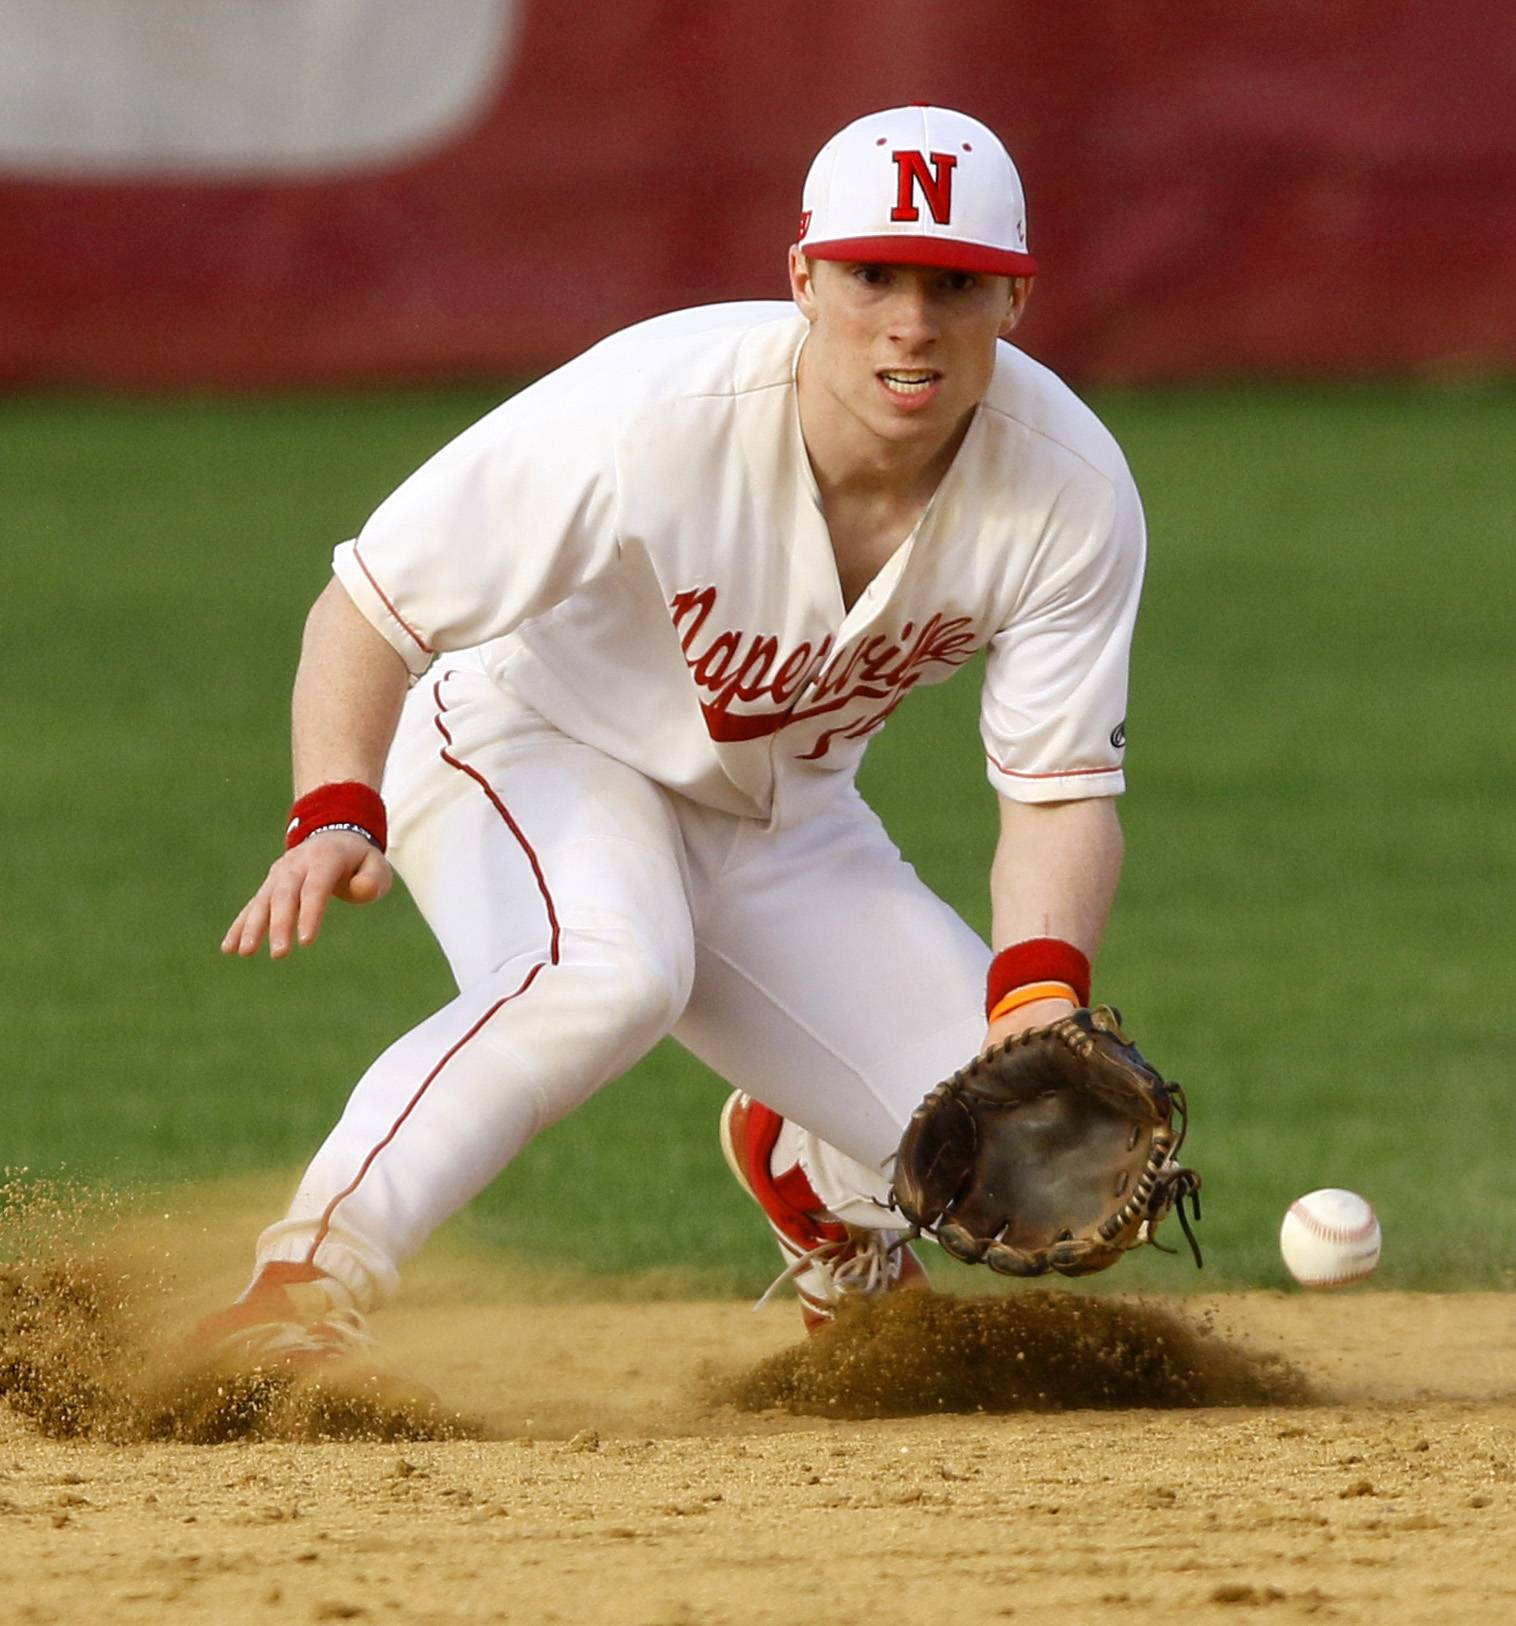 Naperville Central' shortstop Connor Gurnik fields a ground ball during a 5-3 win over Waubonsie Valley in Naperville.